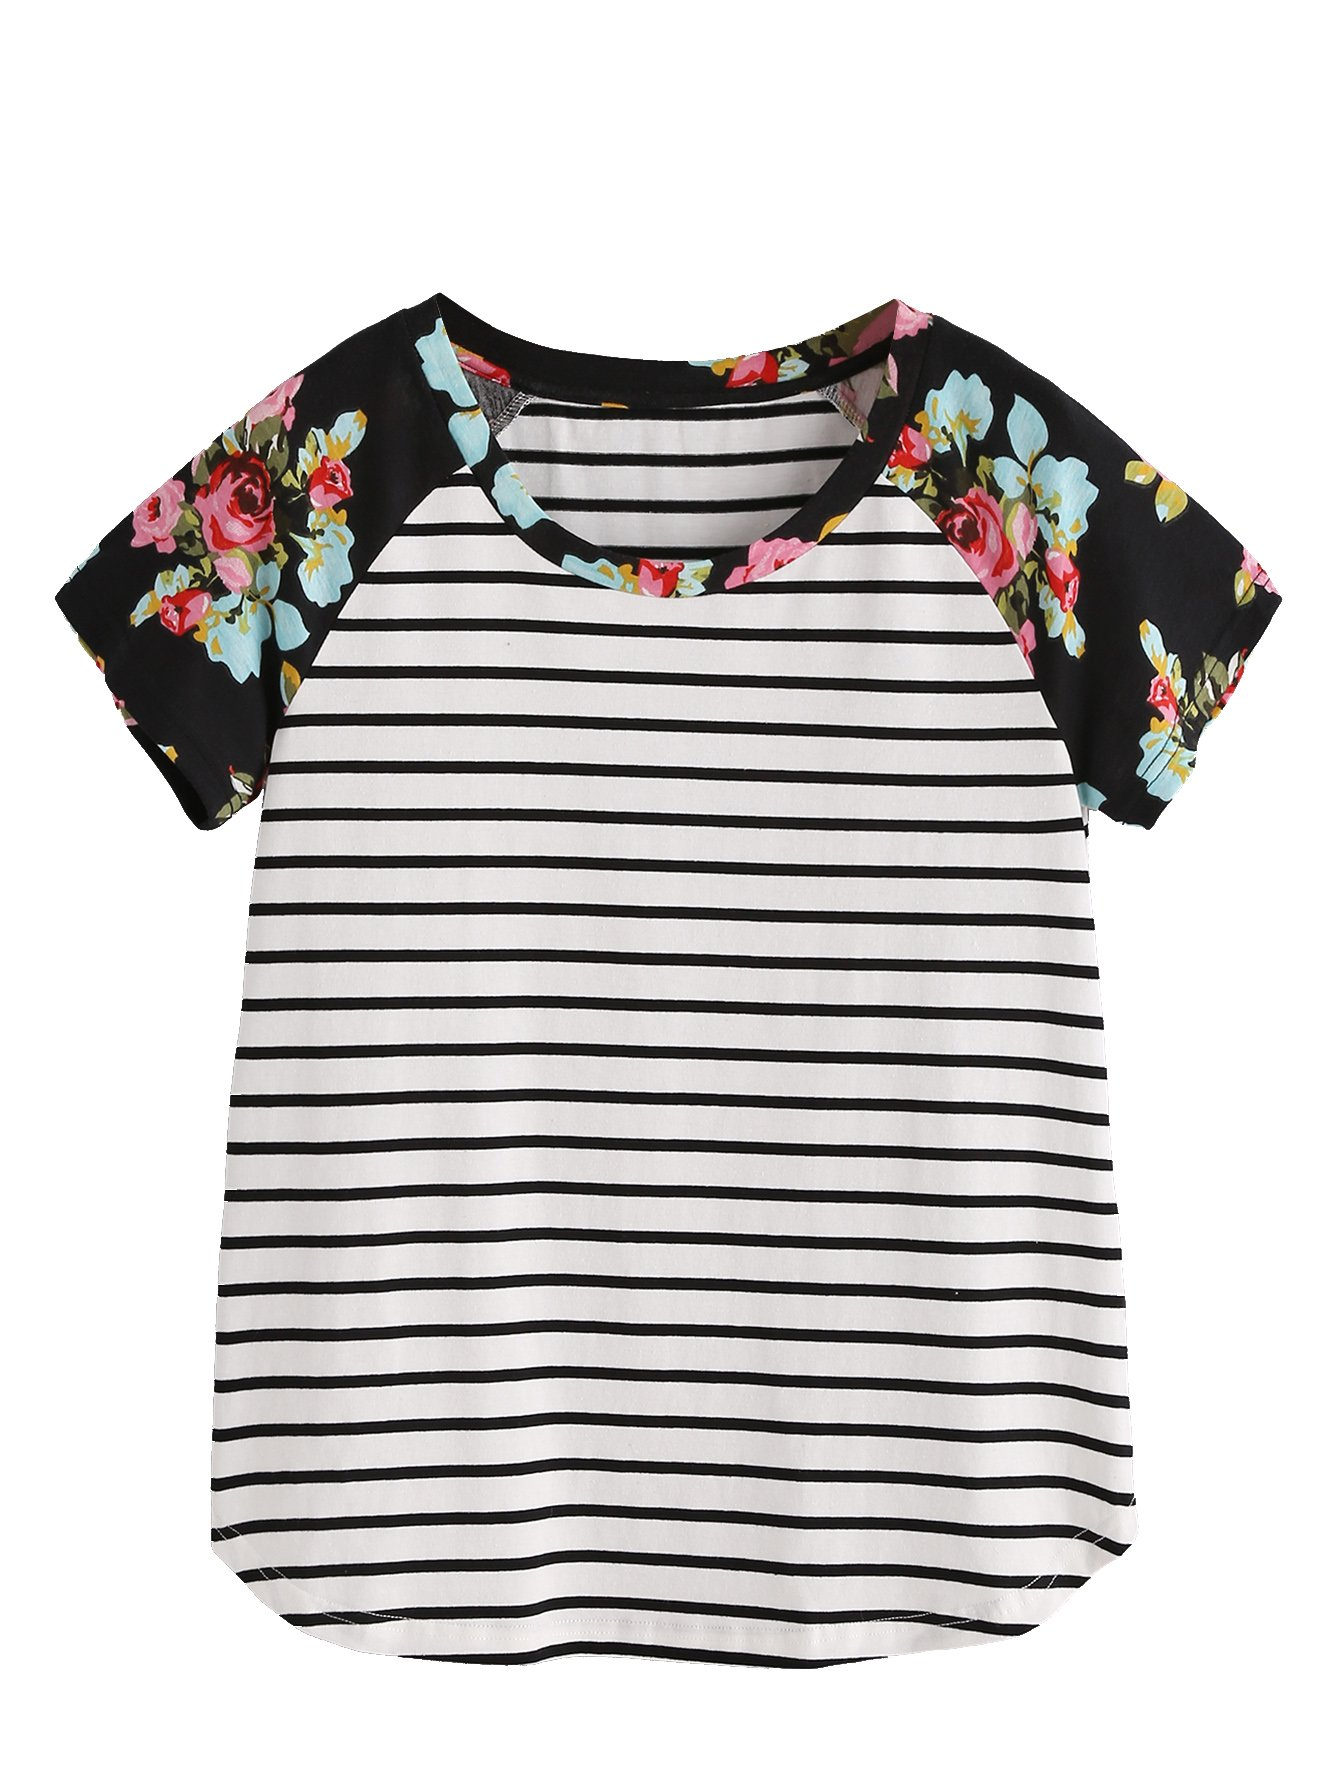 Romwe Women's Floral Print Short Sleeve Tops Striped Casual Blouses T Shirt Black XS